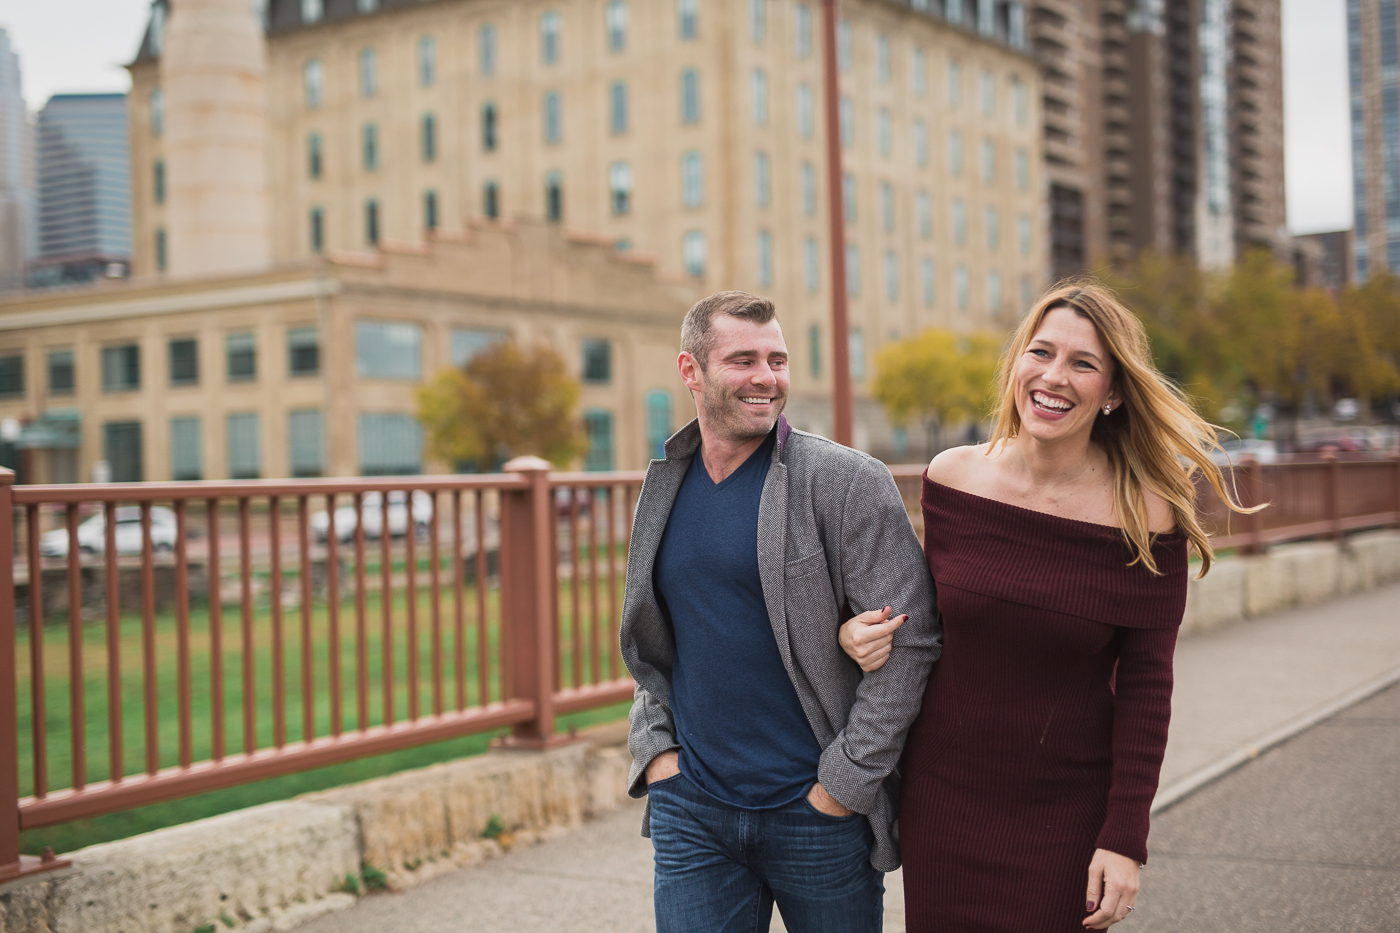 StaciDesign_Mill_City_MPLS_Engagement-5652.jpg